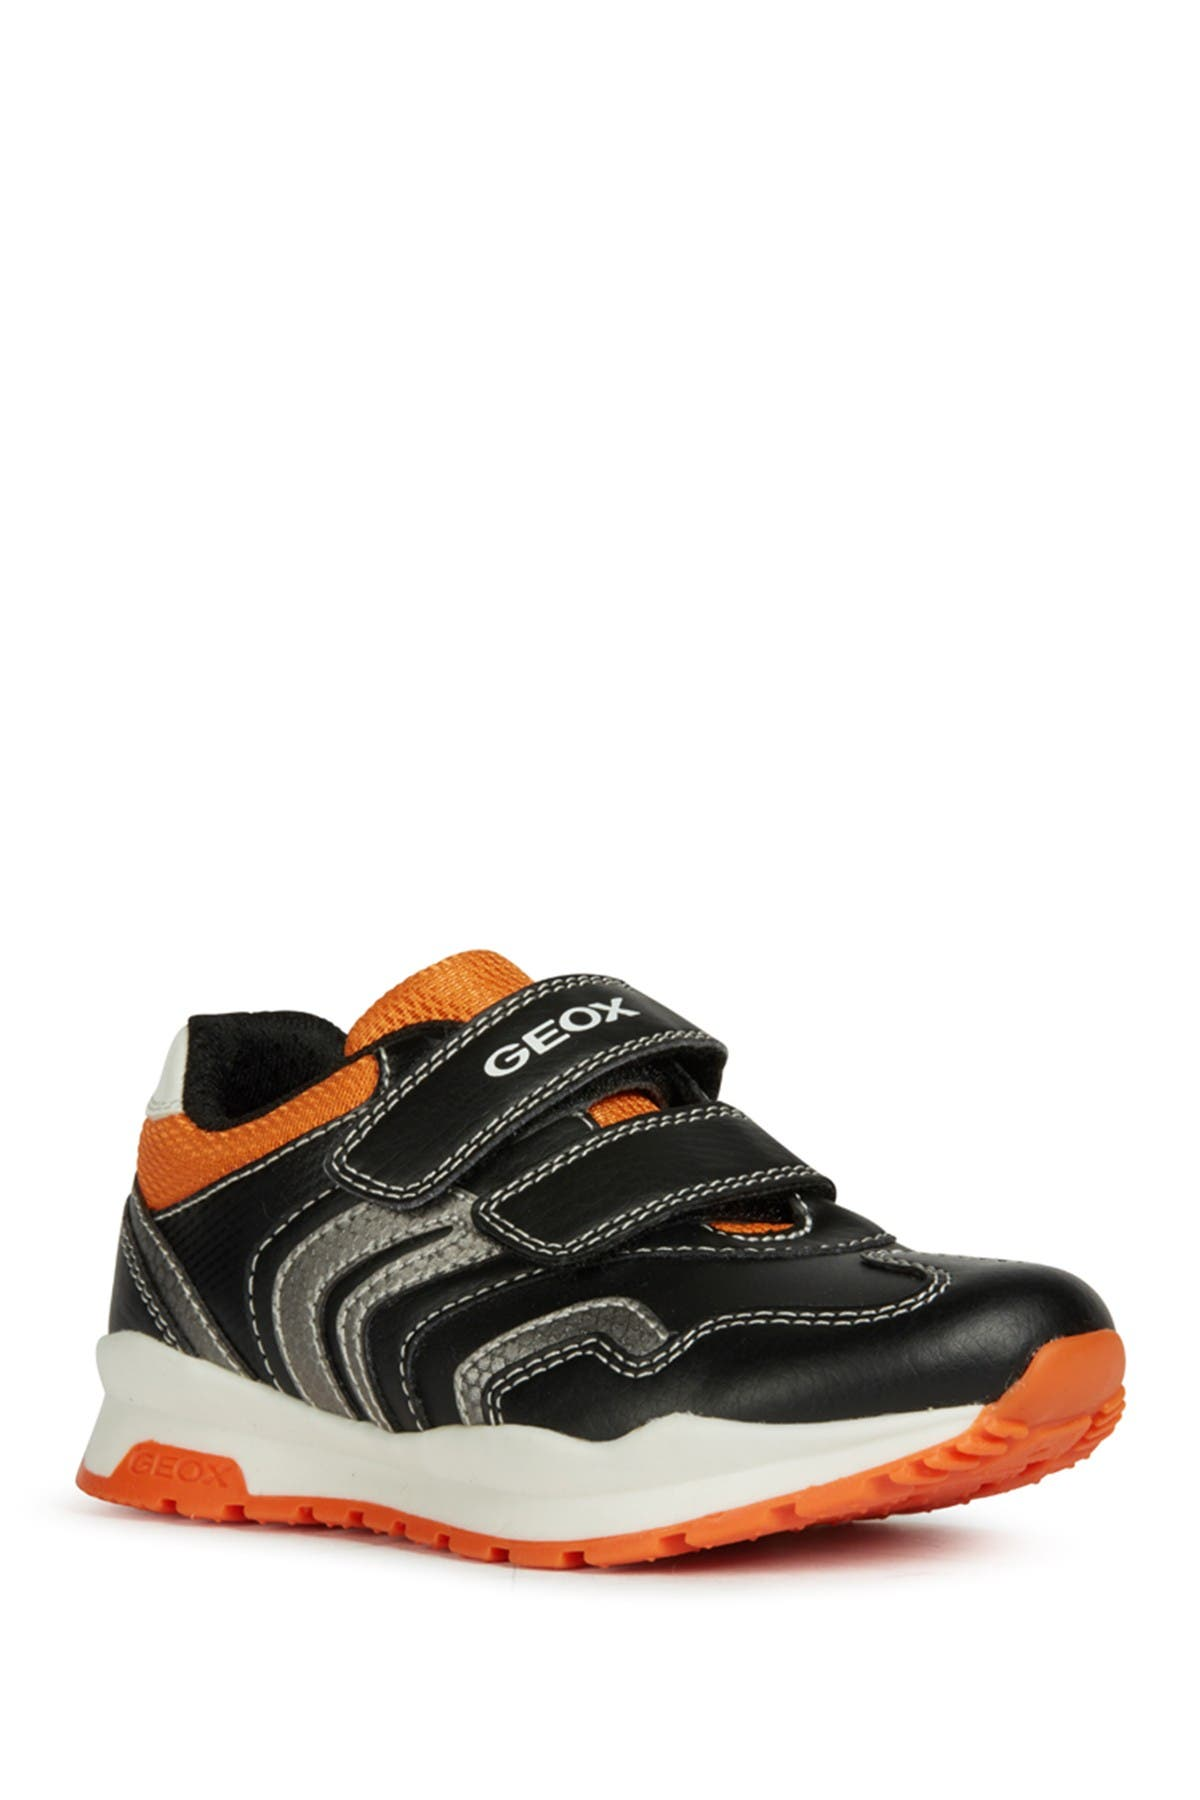 Image of GEOX Pavel Dual Strap Sneaker